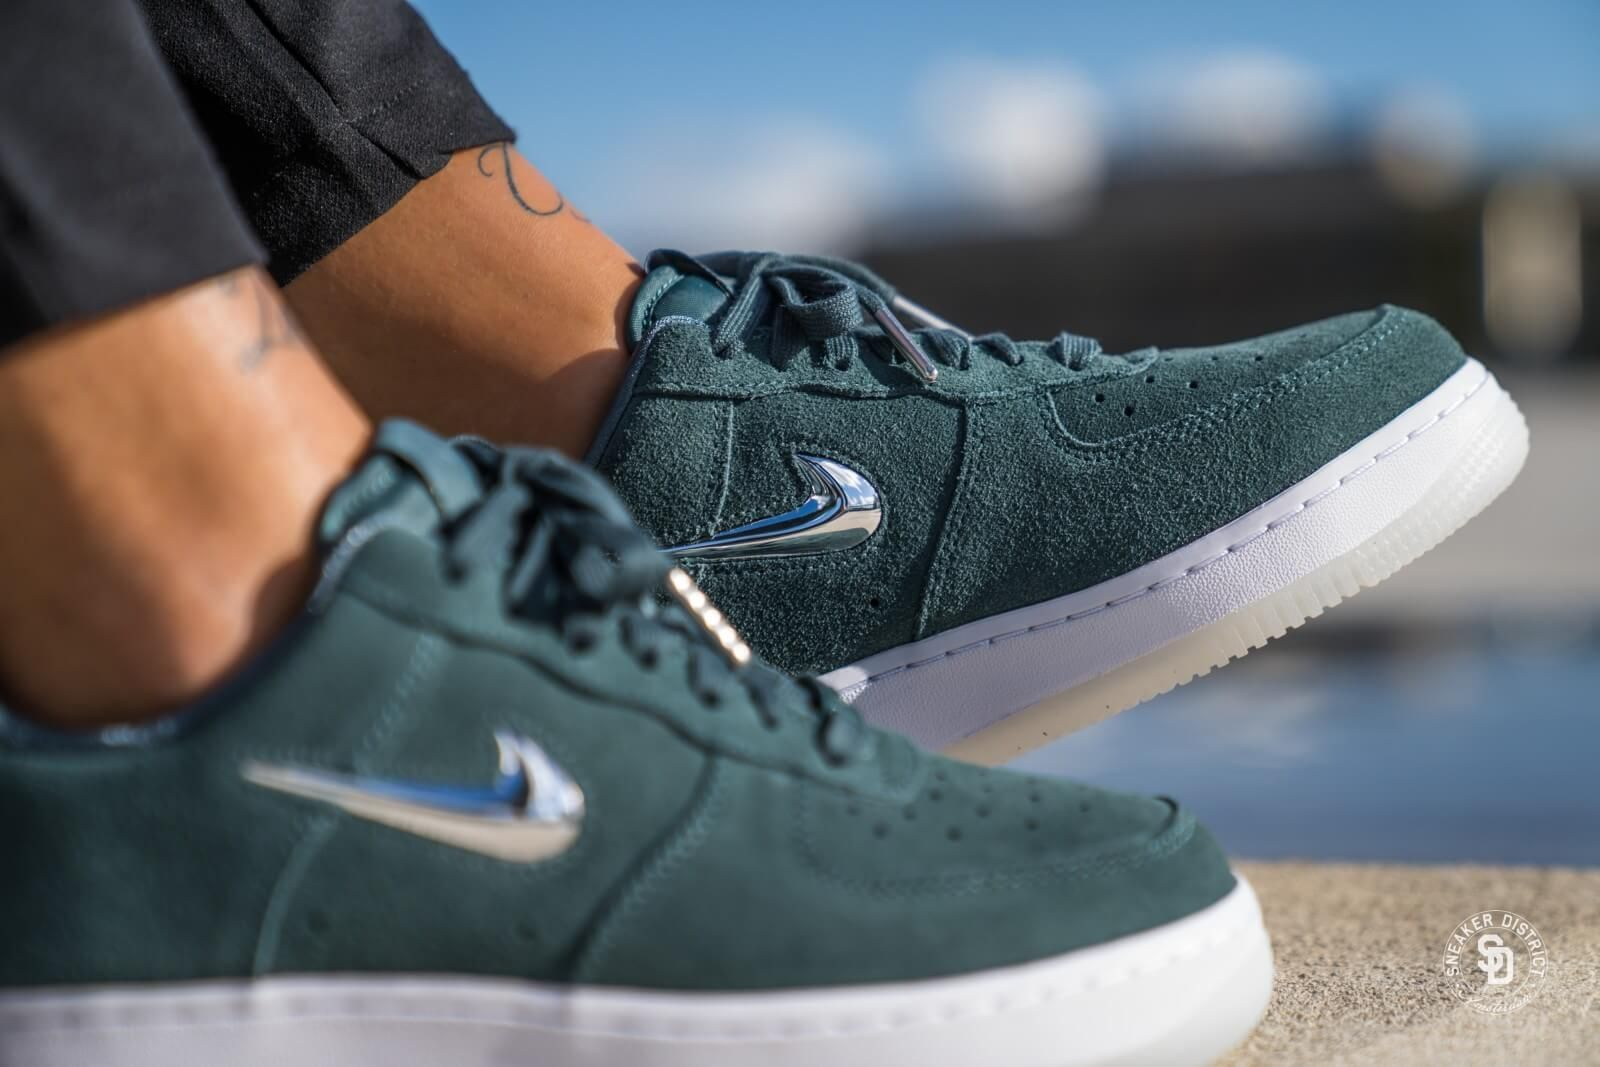 Nike Air Force 1 UltraForce Mid Women's Lifestyle Shoes 864025 203